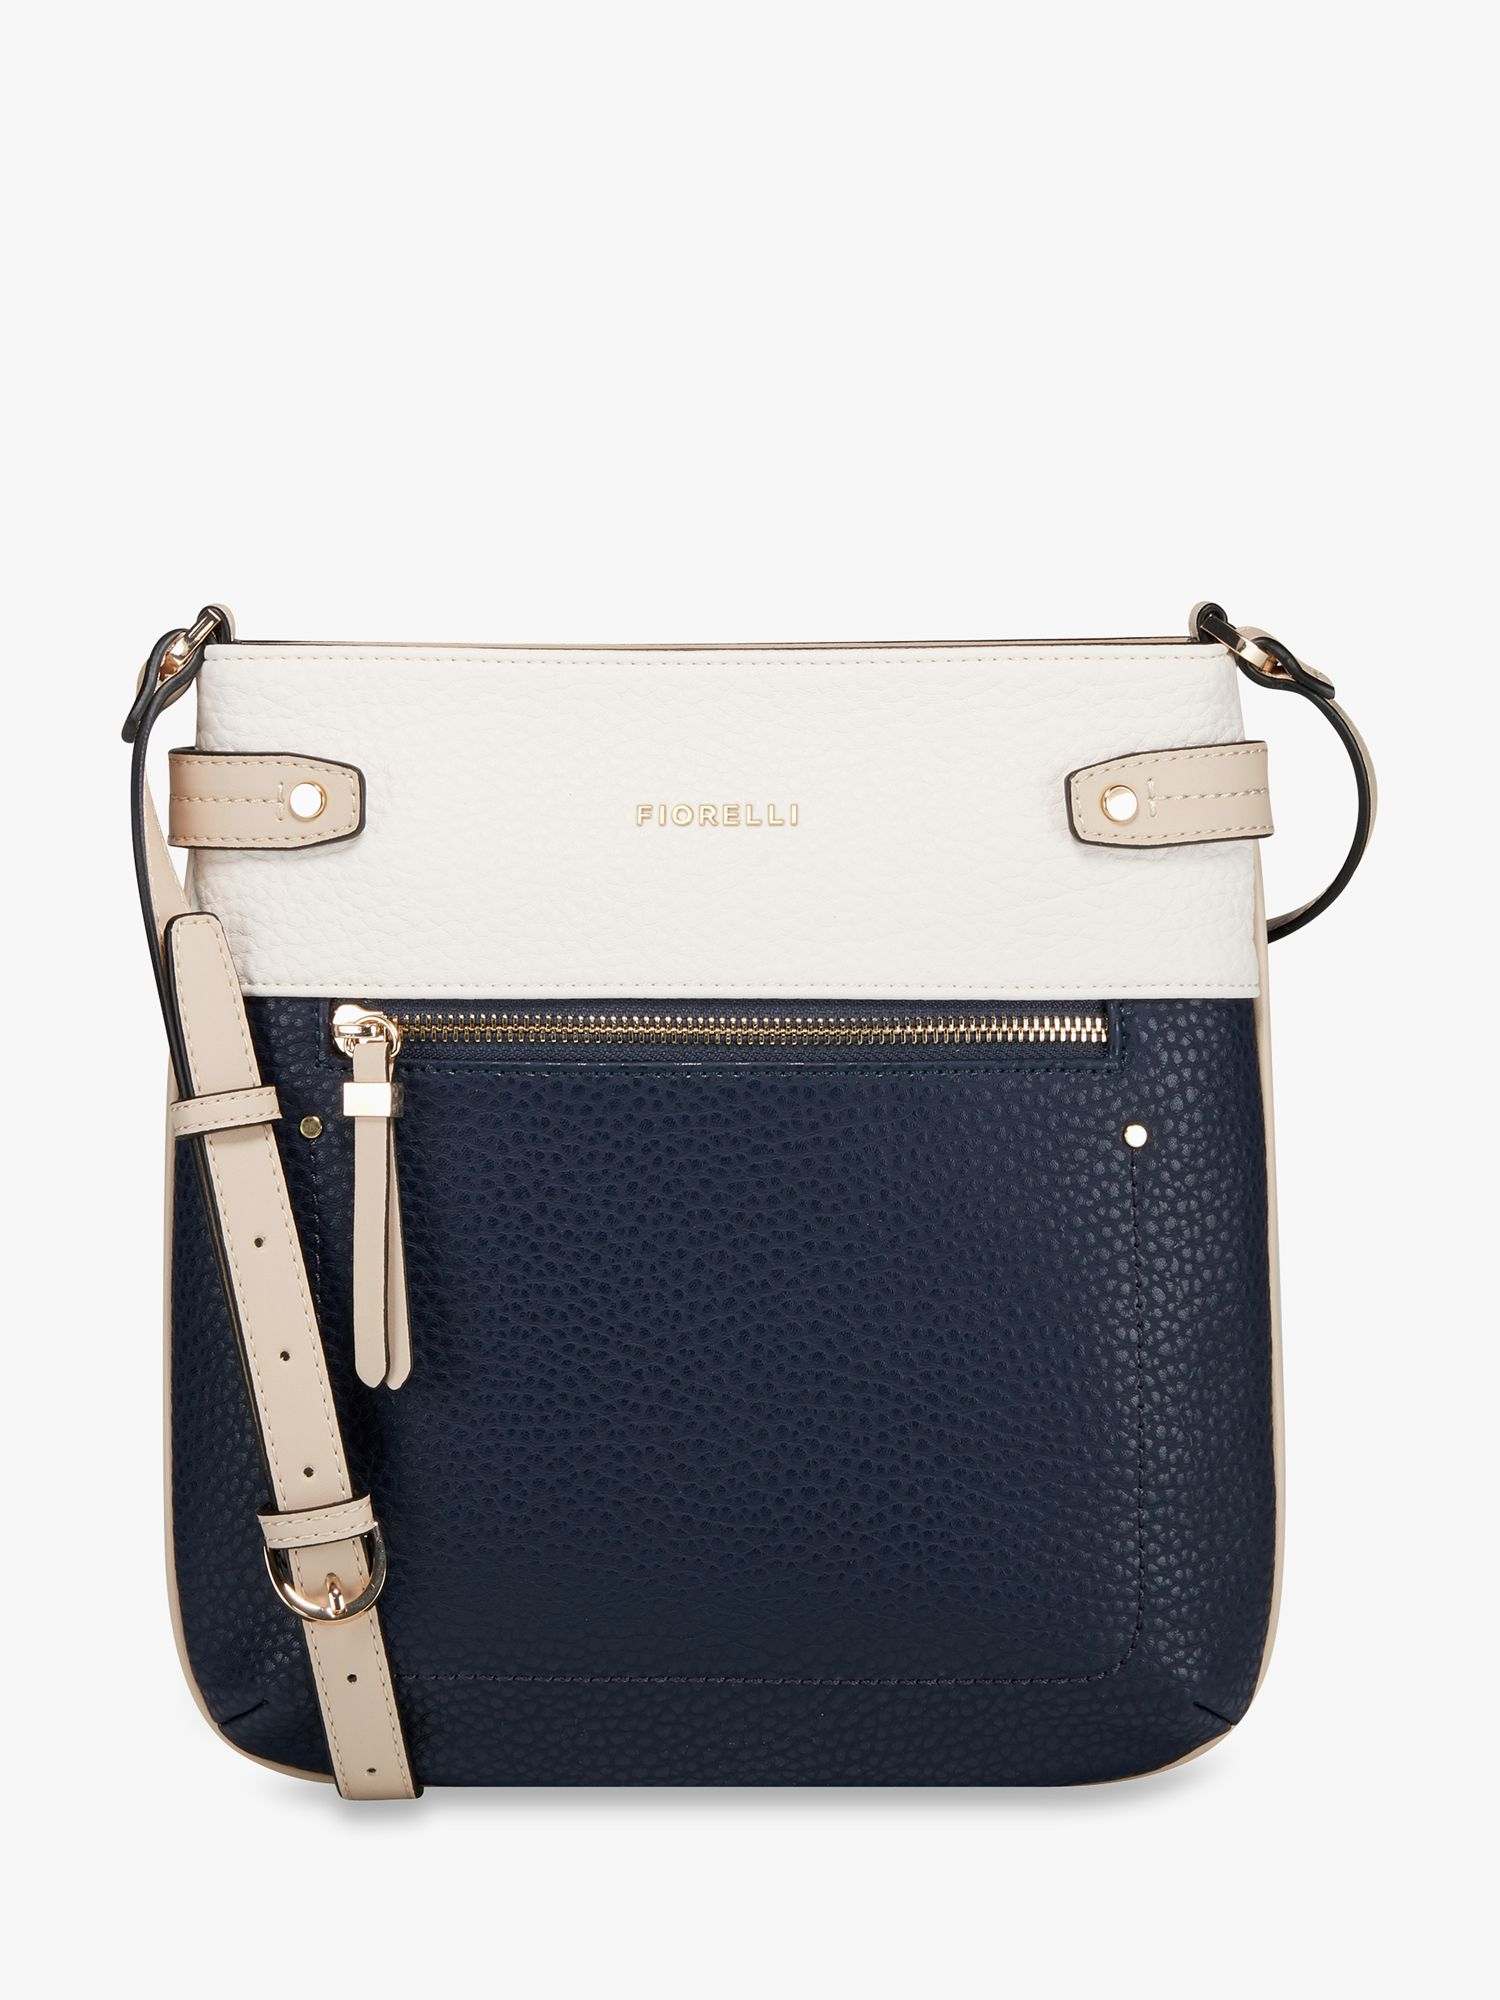 Fiorelli Fiorelli Anna Cross Body Bag, Nautical Navy